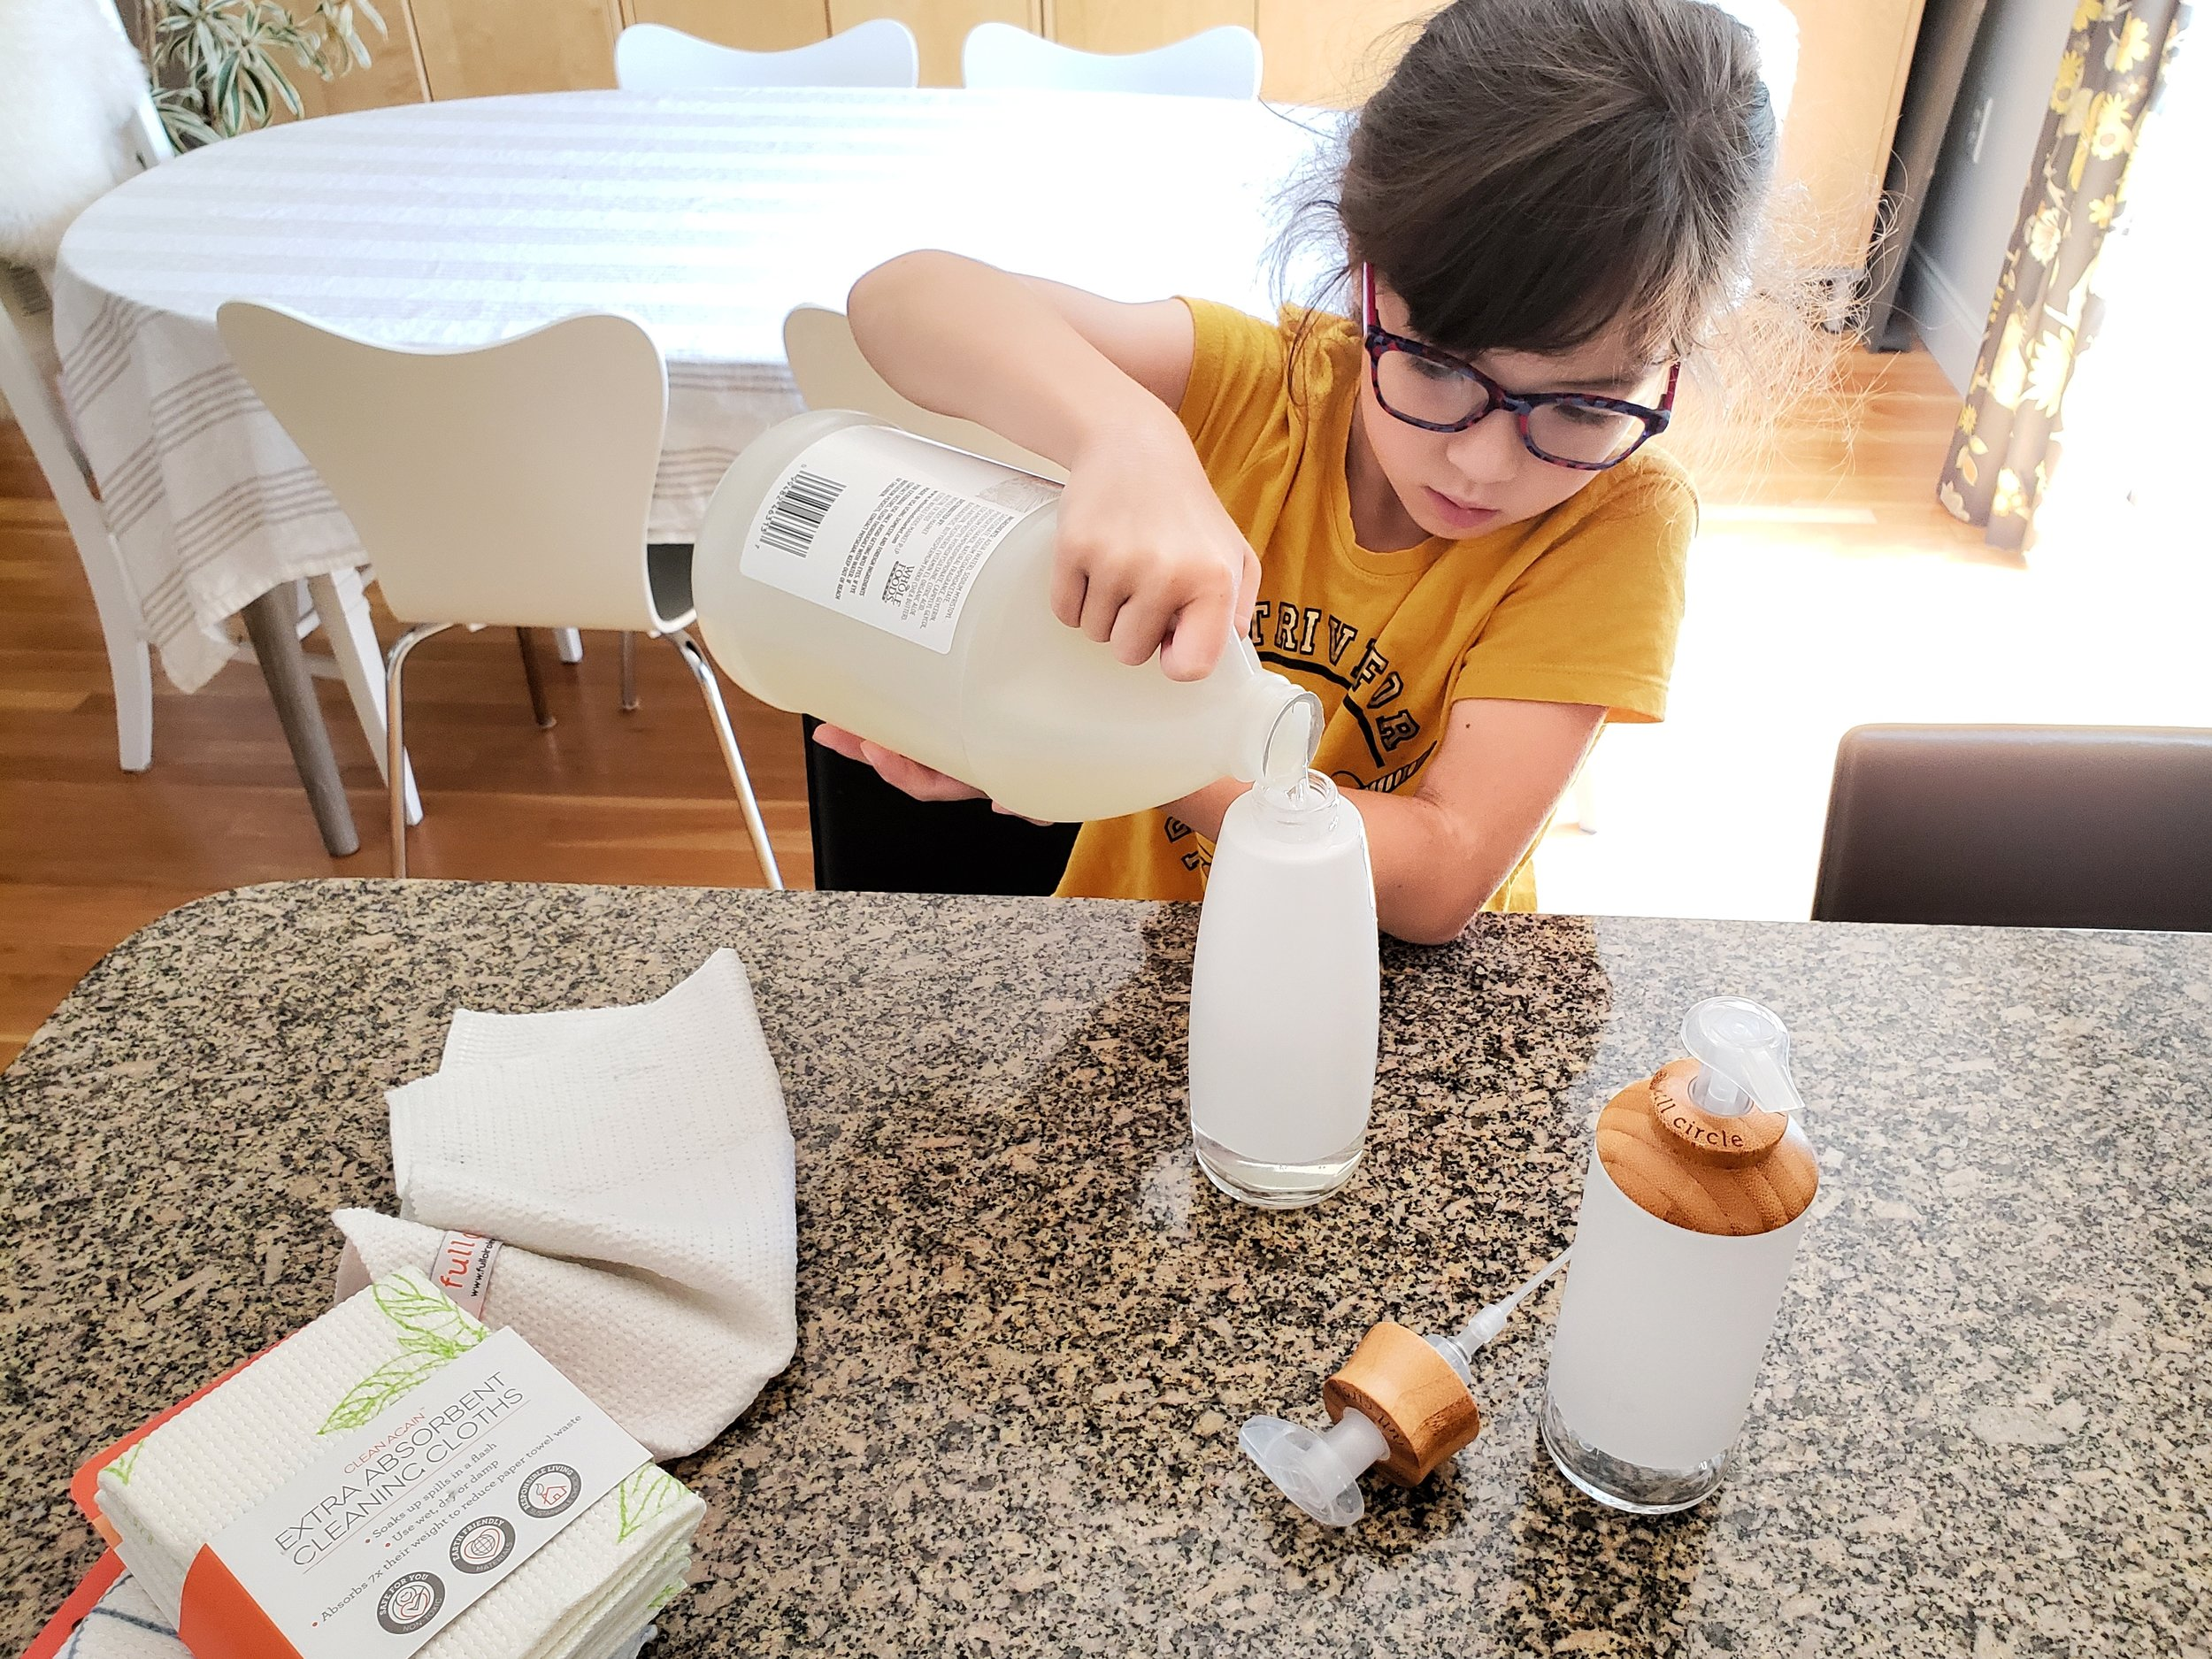 Have kids refill soap bottles on a counter or at the bathroom sink; if they spill soap, they can use it to clean up the surfaces!